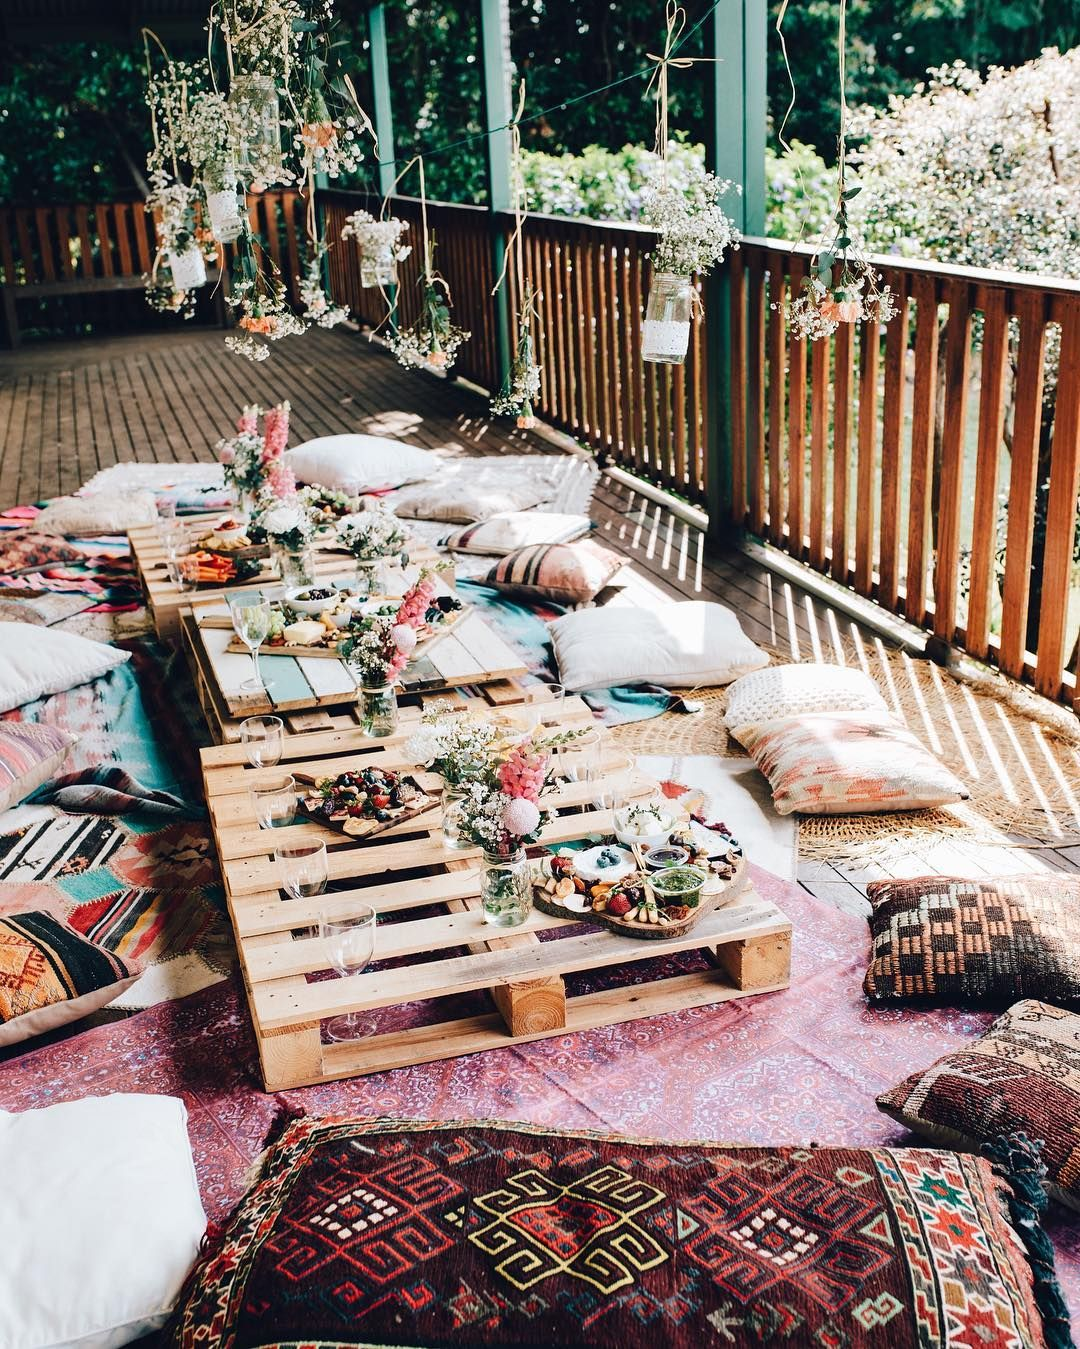 Elsas Wholesomelife Bohemian Outdoor Dinner Party With